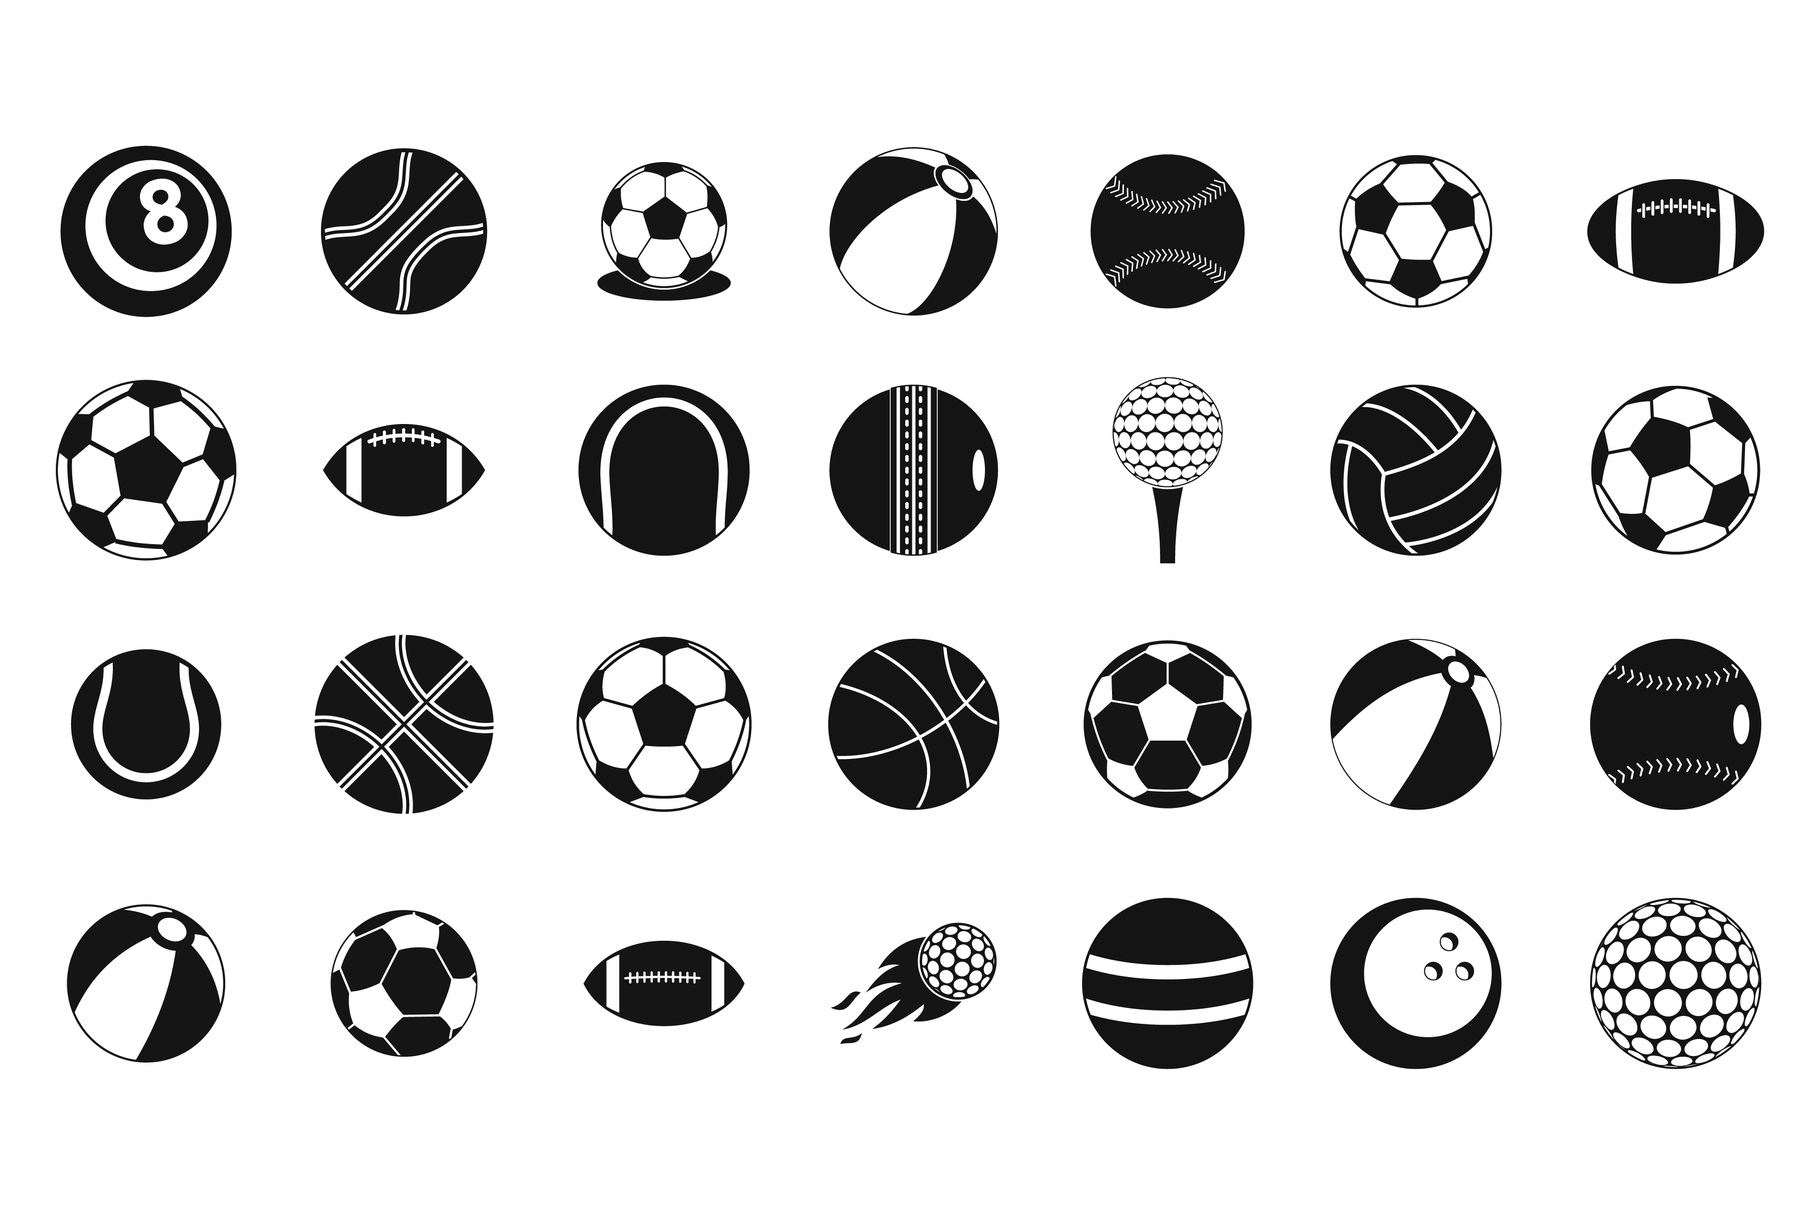 Ball icon set, simple style example image 1